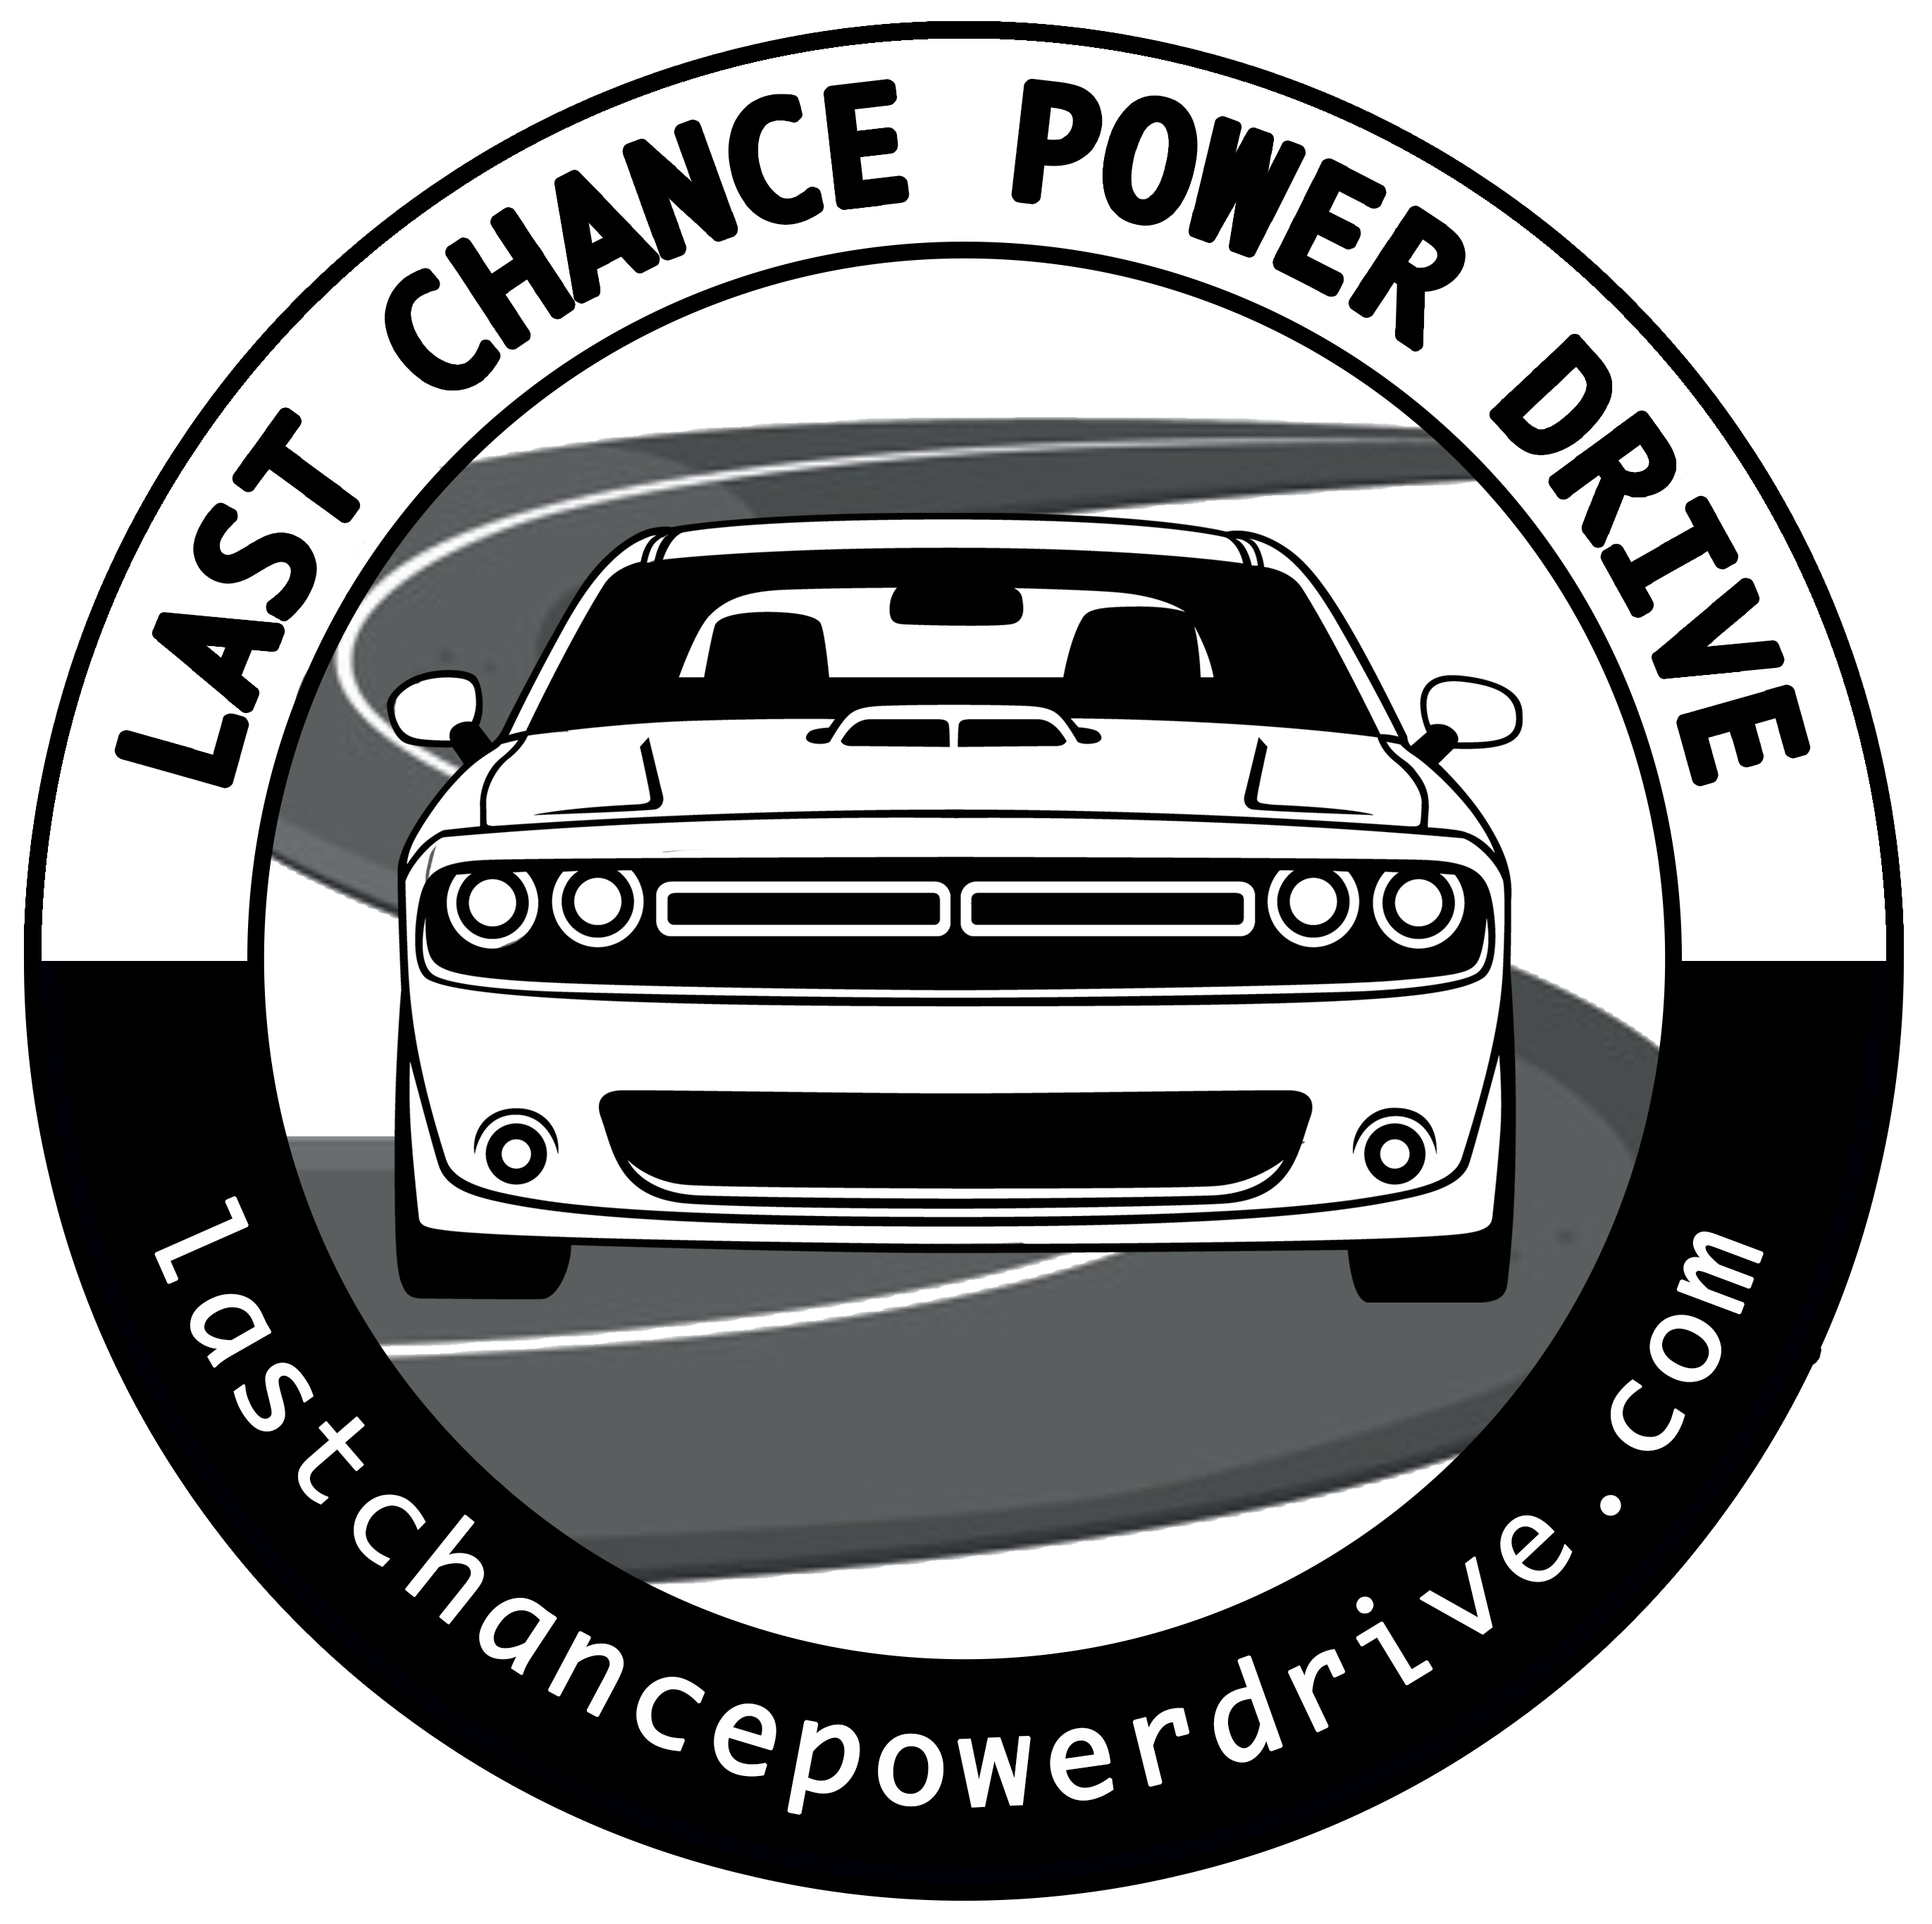 Last Chance Power Drive